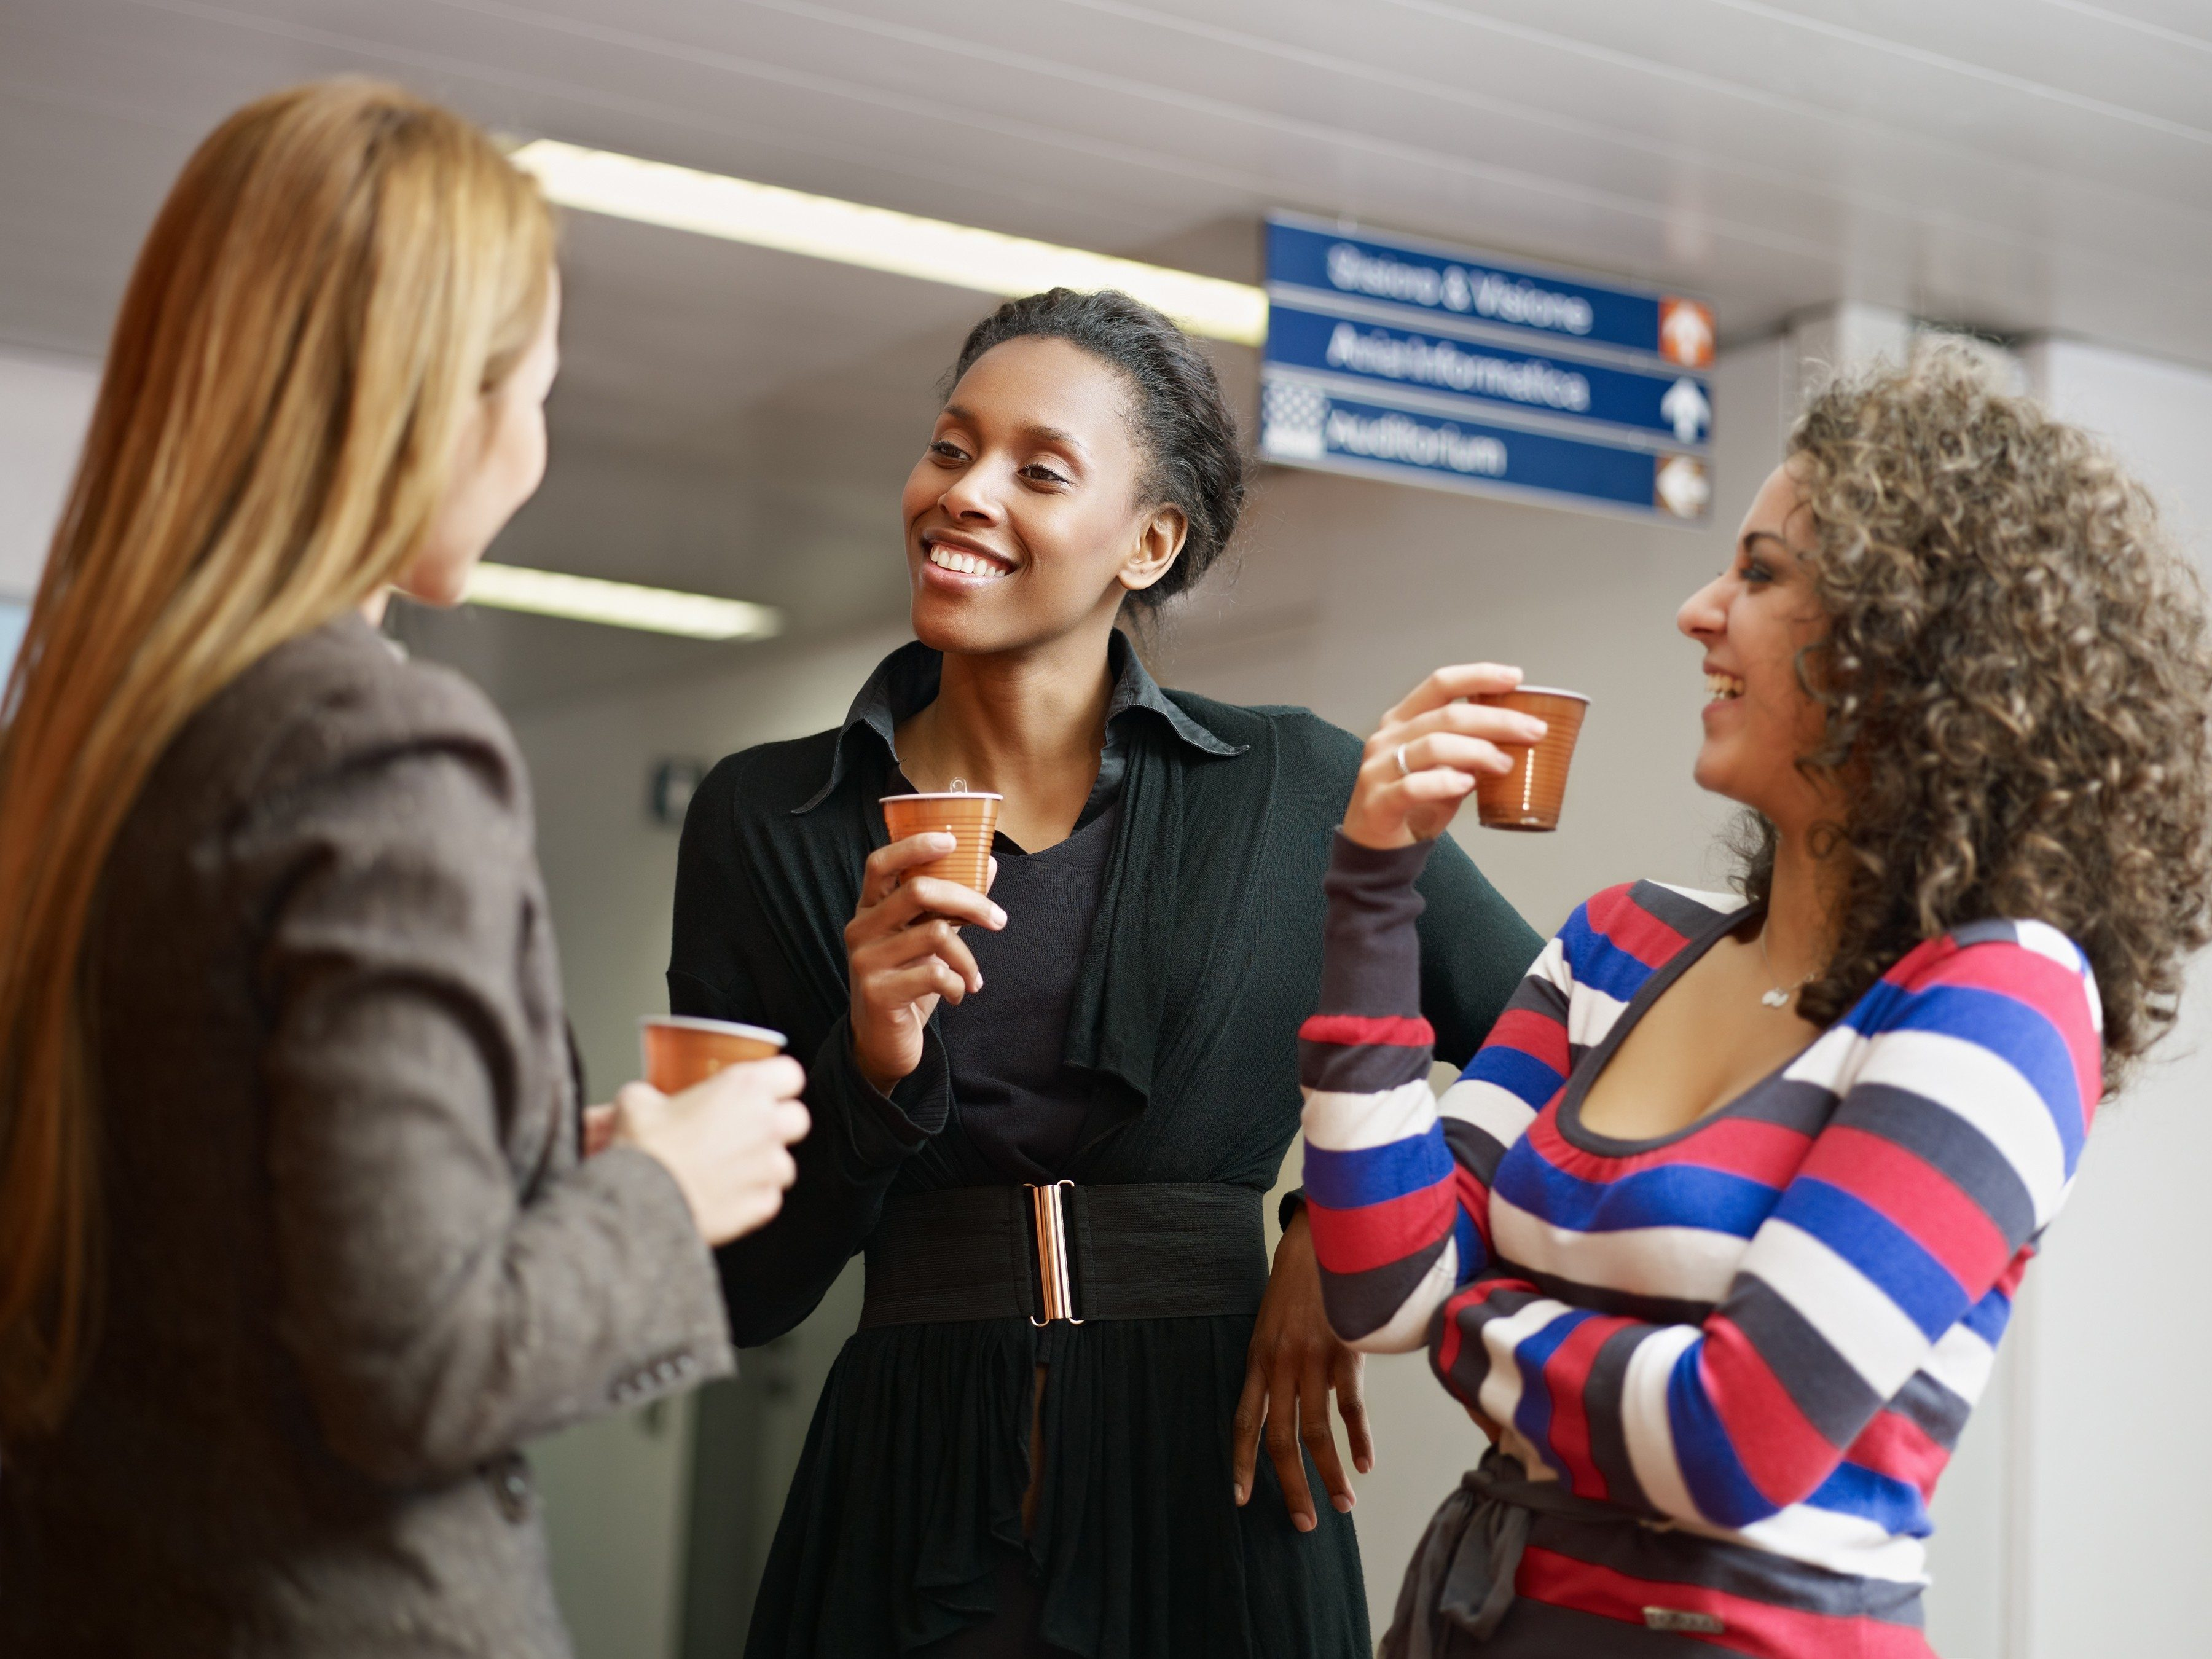 Create a collegial community with your co-workers